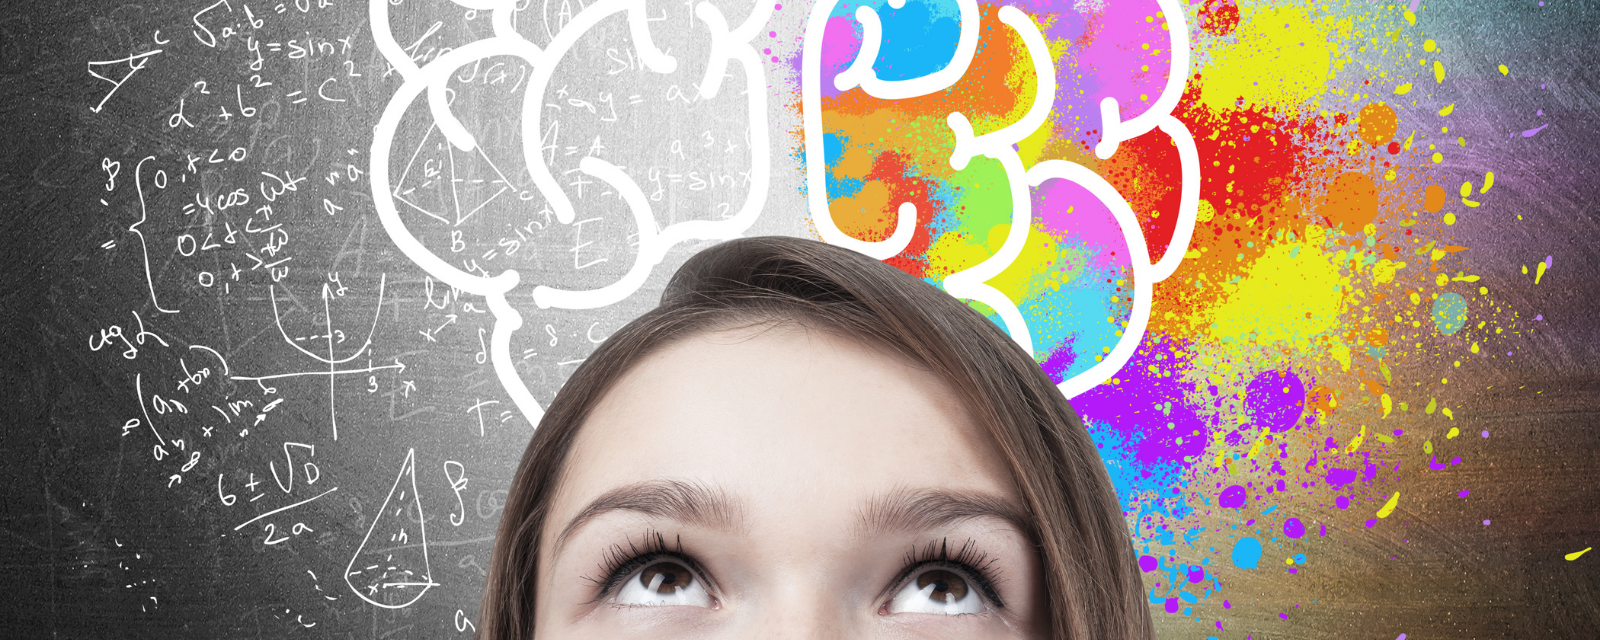 woman looking up at colorful drawing of a brain implying creative thinking